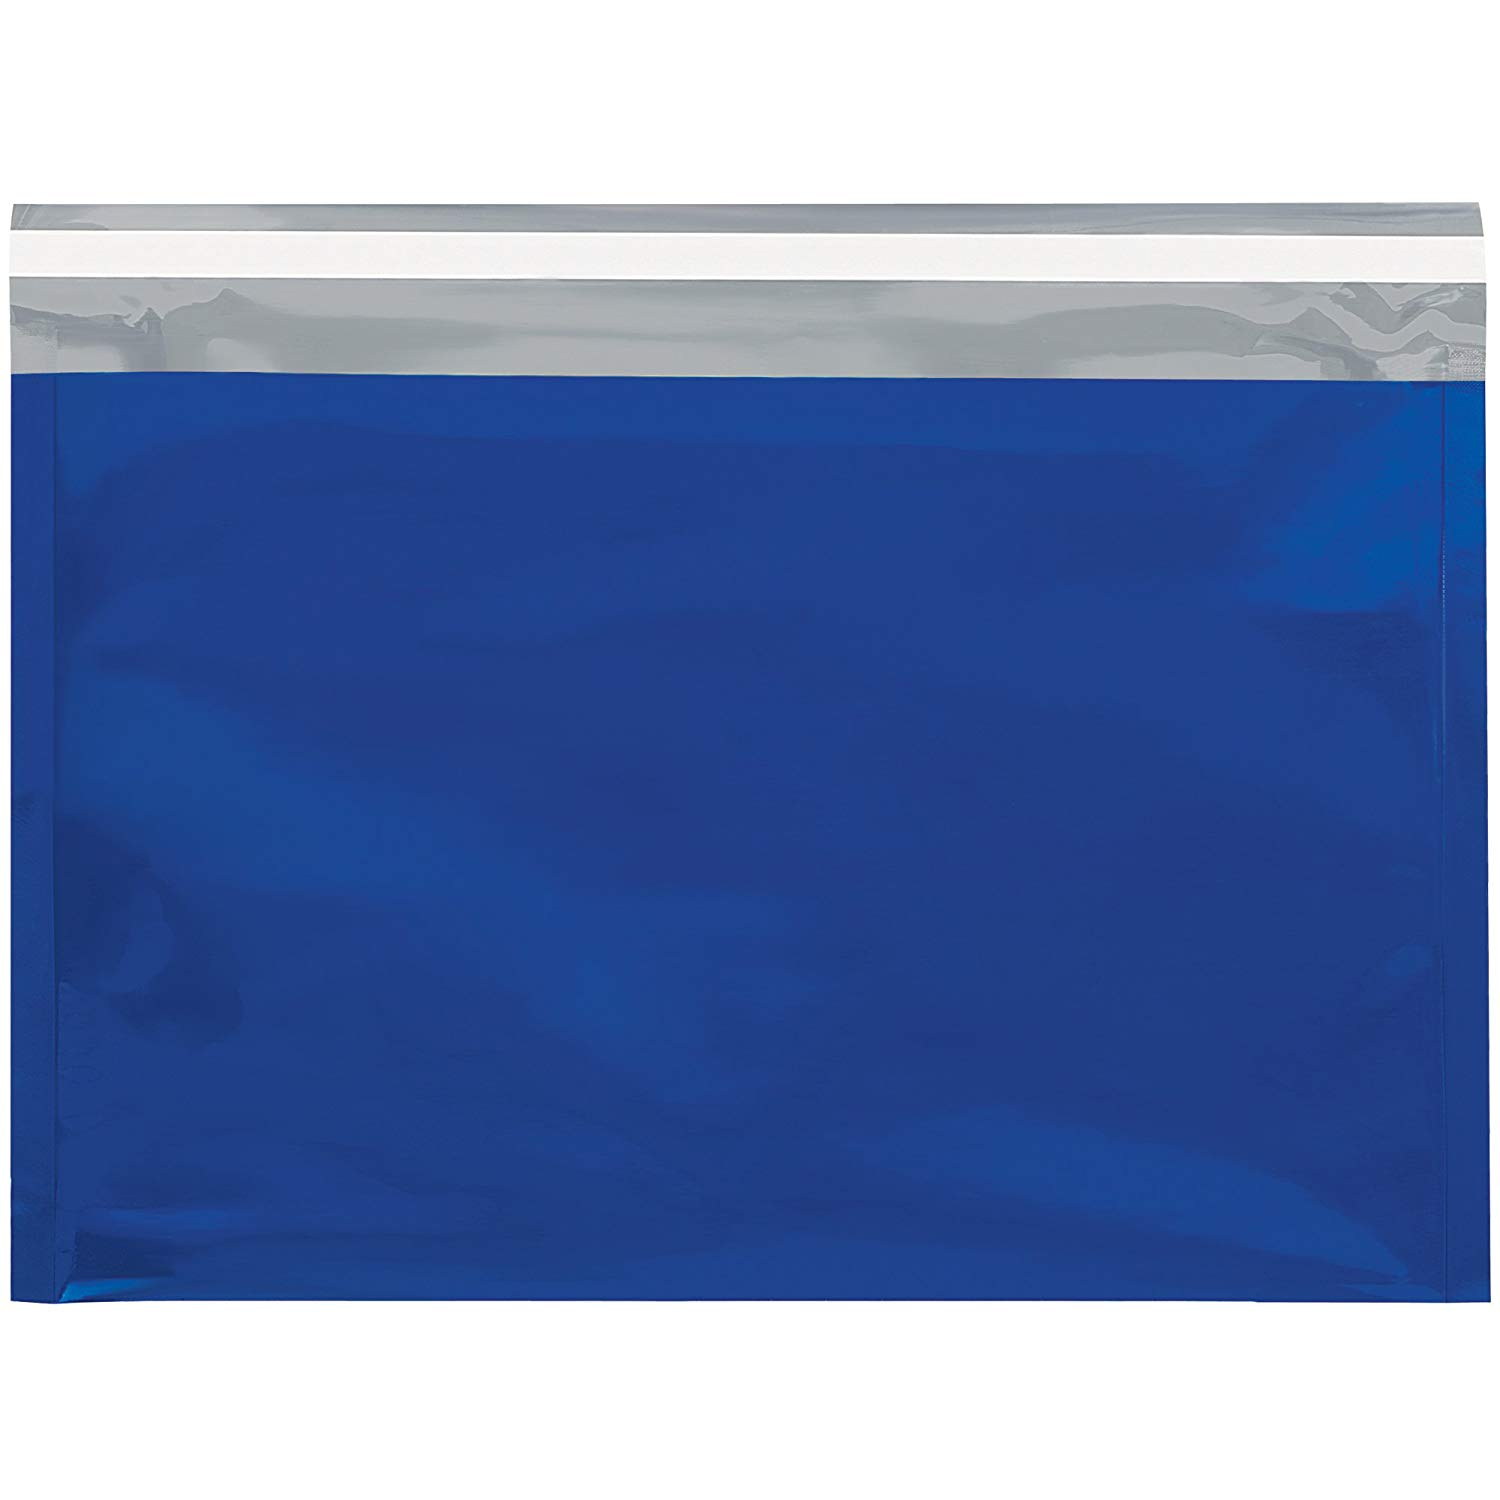 "Boxes Fast BFGFM0912B Metallic Glamour Mailers, 9 1/2"" x 12 3/4"", Blue (Pack of 250)"